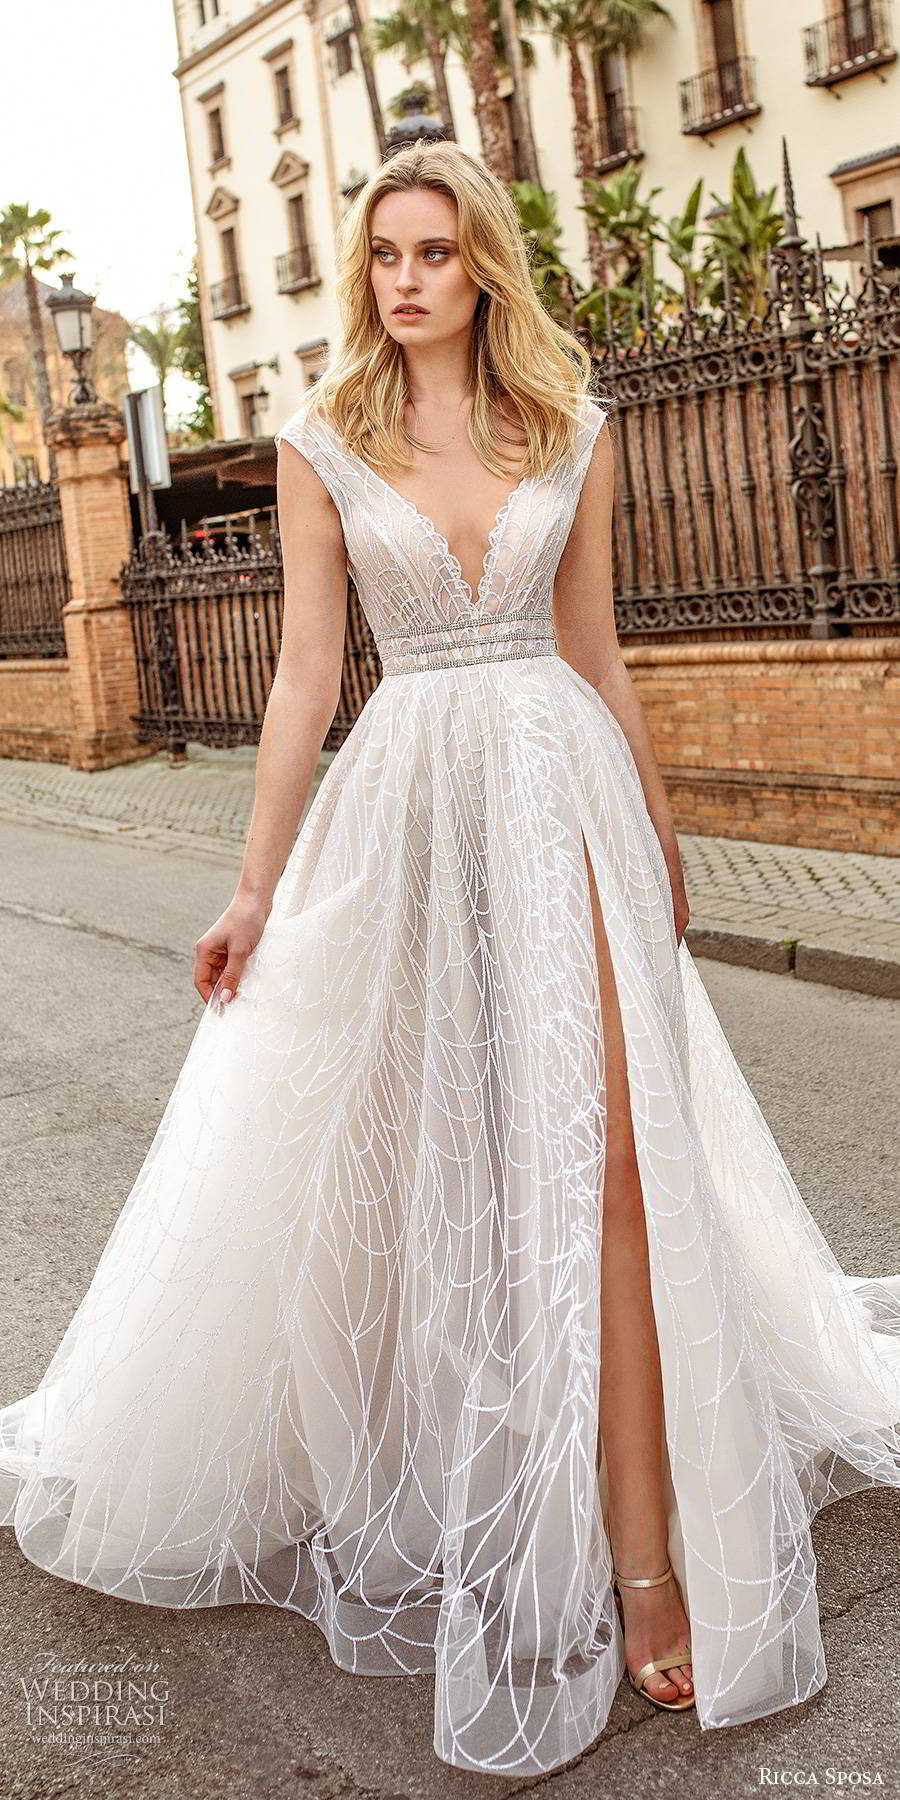 ricca sposa 2019 bridal cap sleeves deep v neckline a line ball gown wedding dress slit skirt chapel train (7) mv